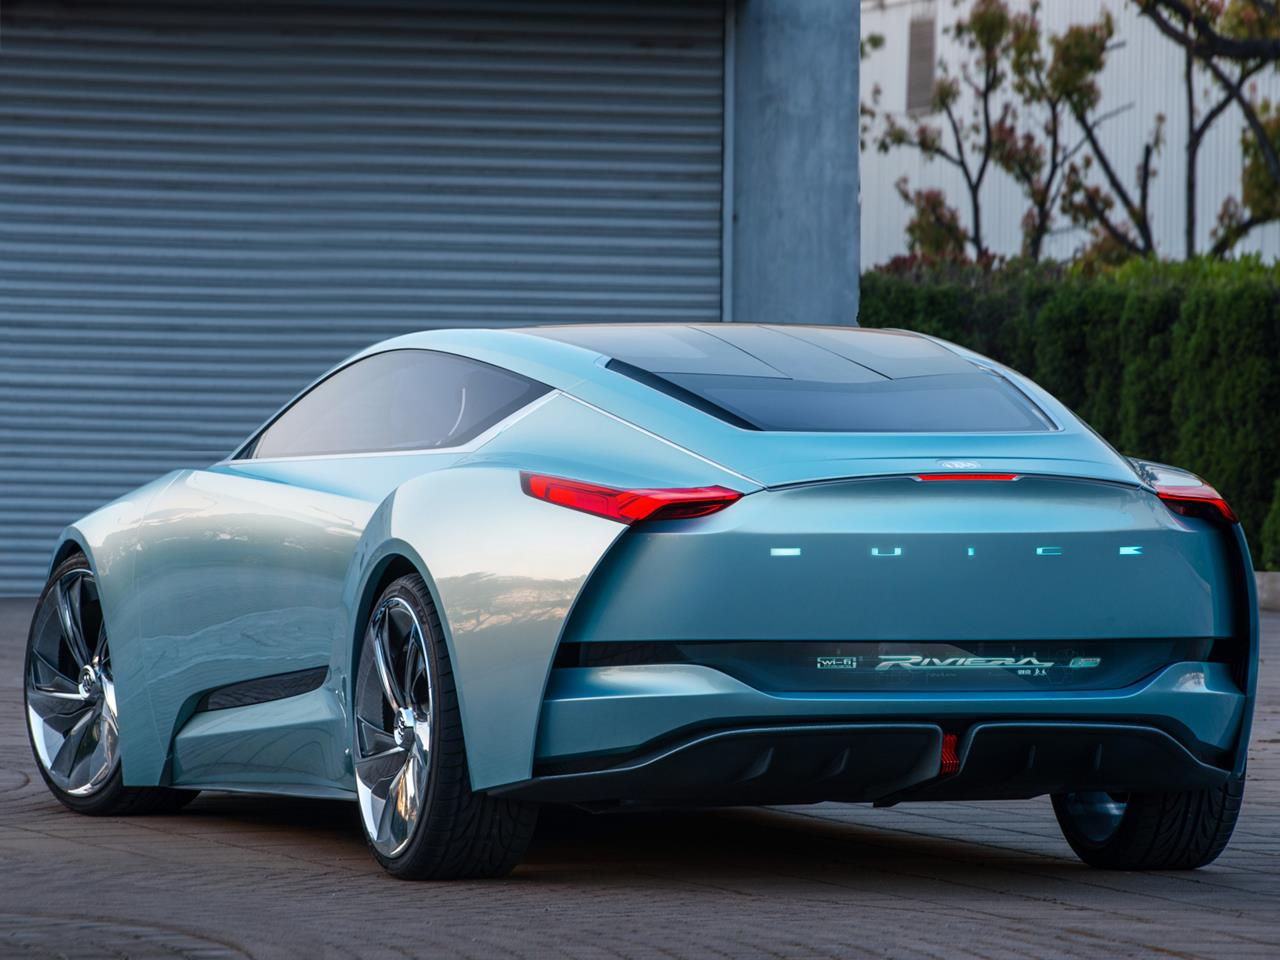 Cute Hollographic Wallpapers Buick Riviera Smart Concept Car Hits The Floor Xcitefun Net